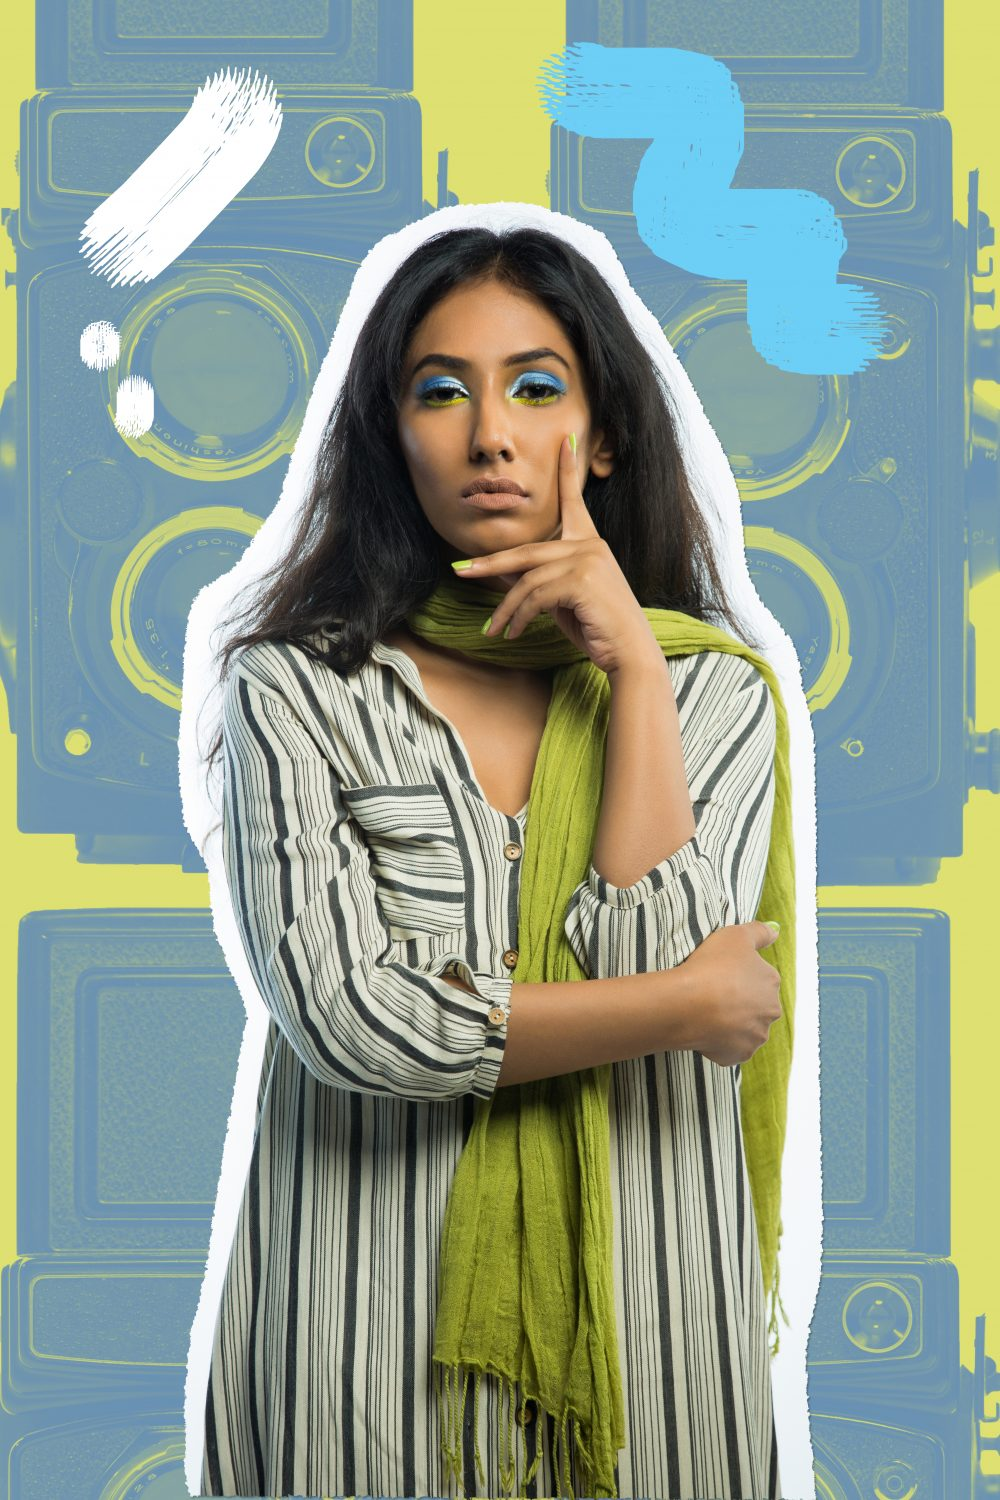 hyderabad fashion bloggers ; Quirk box Quirky colors Editorial colorful fashion photography artwork candies candy style beauty blogger hyderabad indian Naznin Suhaer I Dress for the Applause model conceptual concept vero moda koovs max fashions yellow green fun artist prints graphic artsy pop art stripes shirt dress bird owl